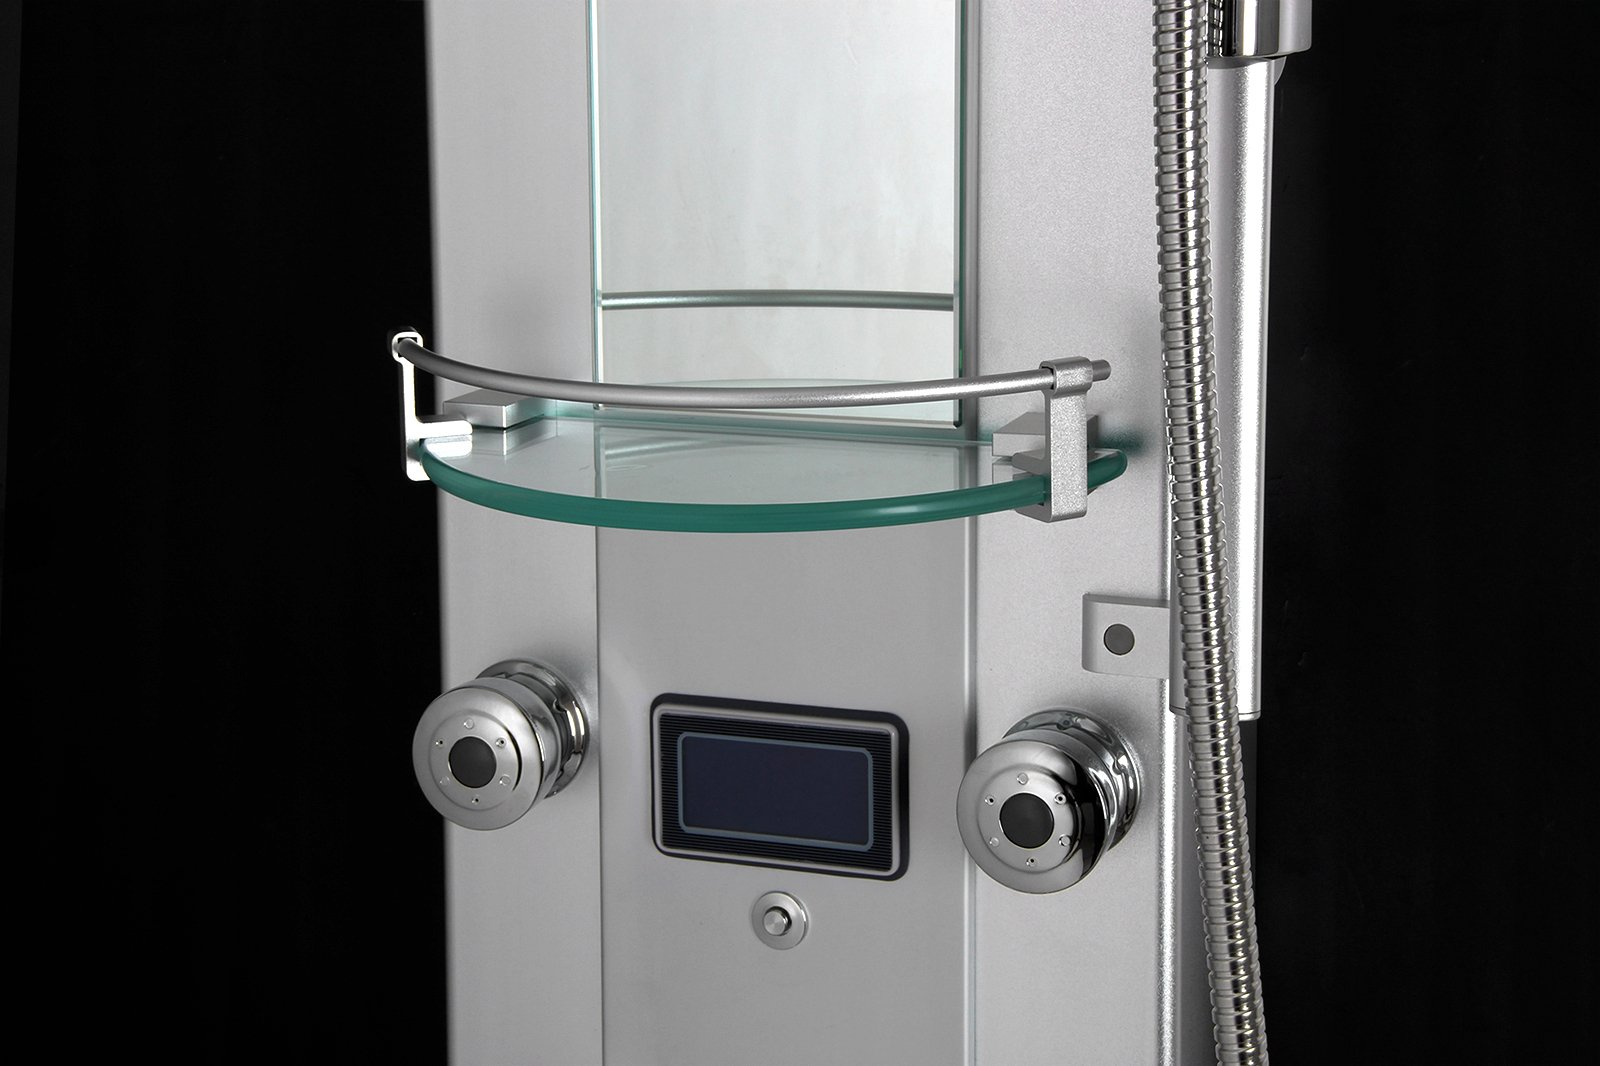 AKDY 5333D 51'' Aluminum Rain Style System with 3 Colors LED Shower Panel by AKDY